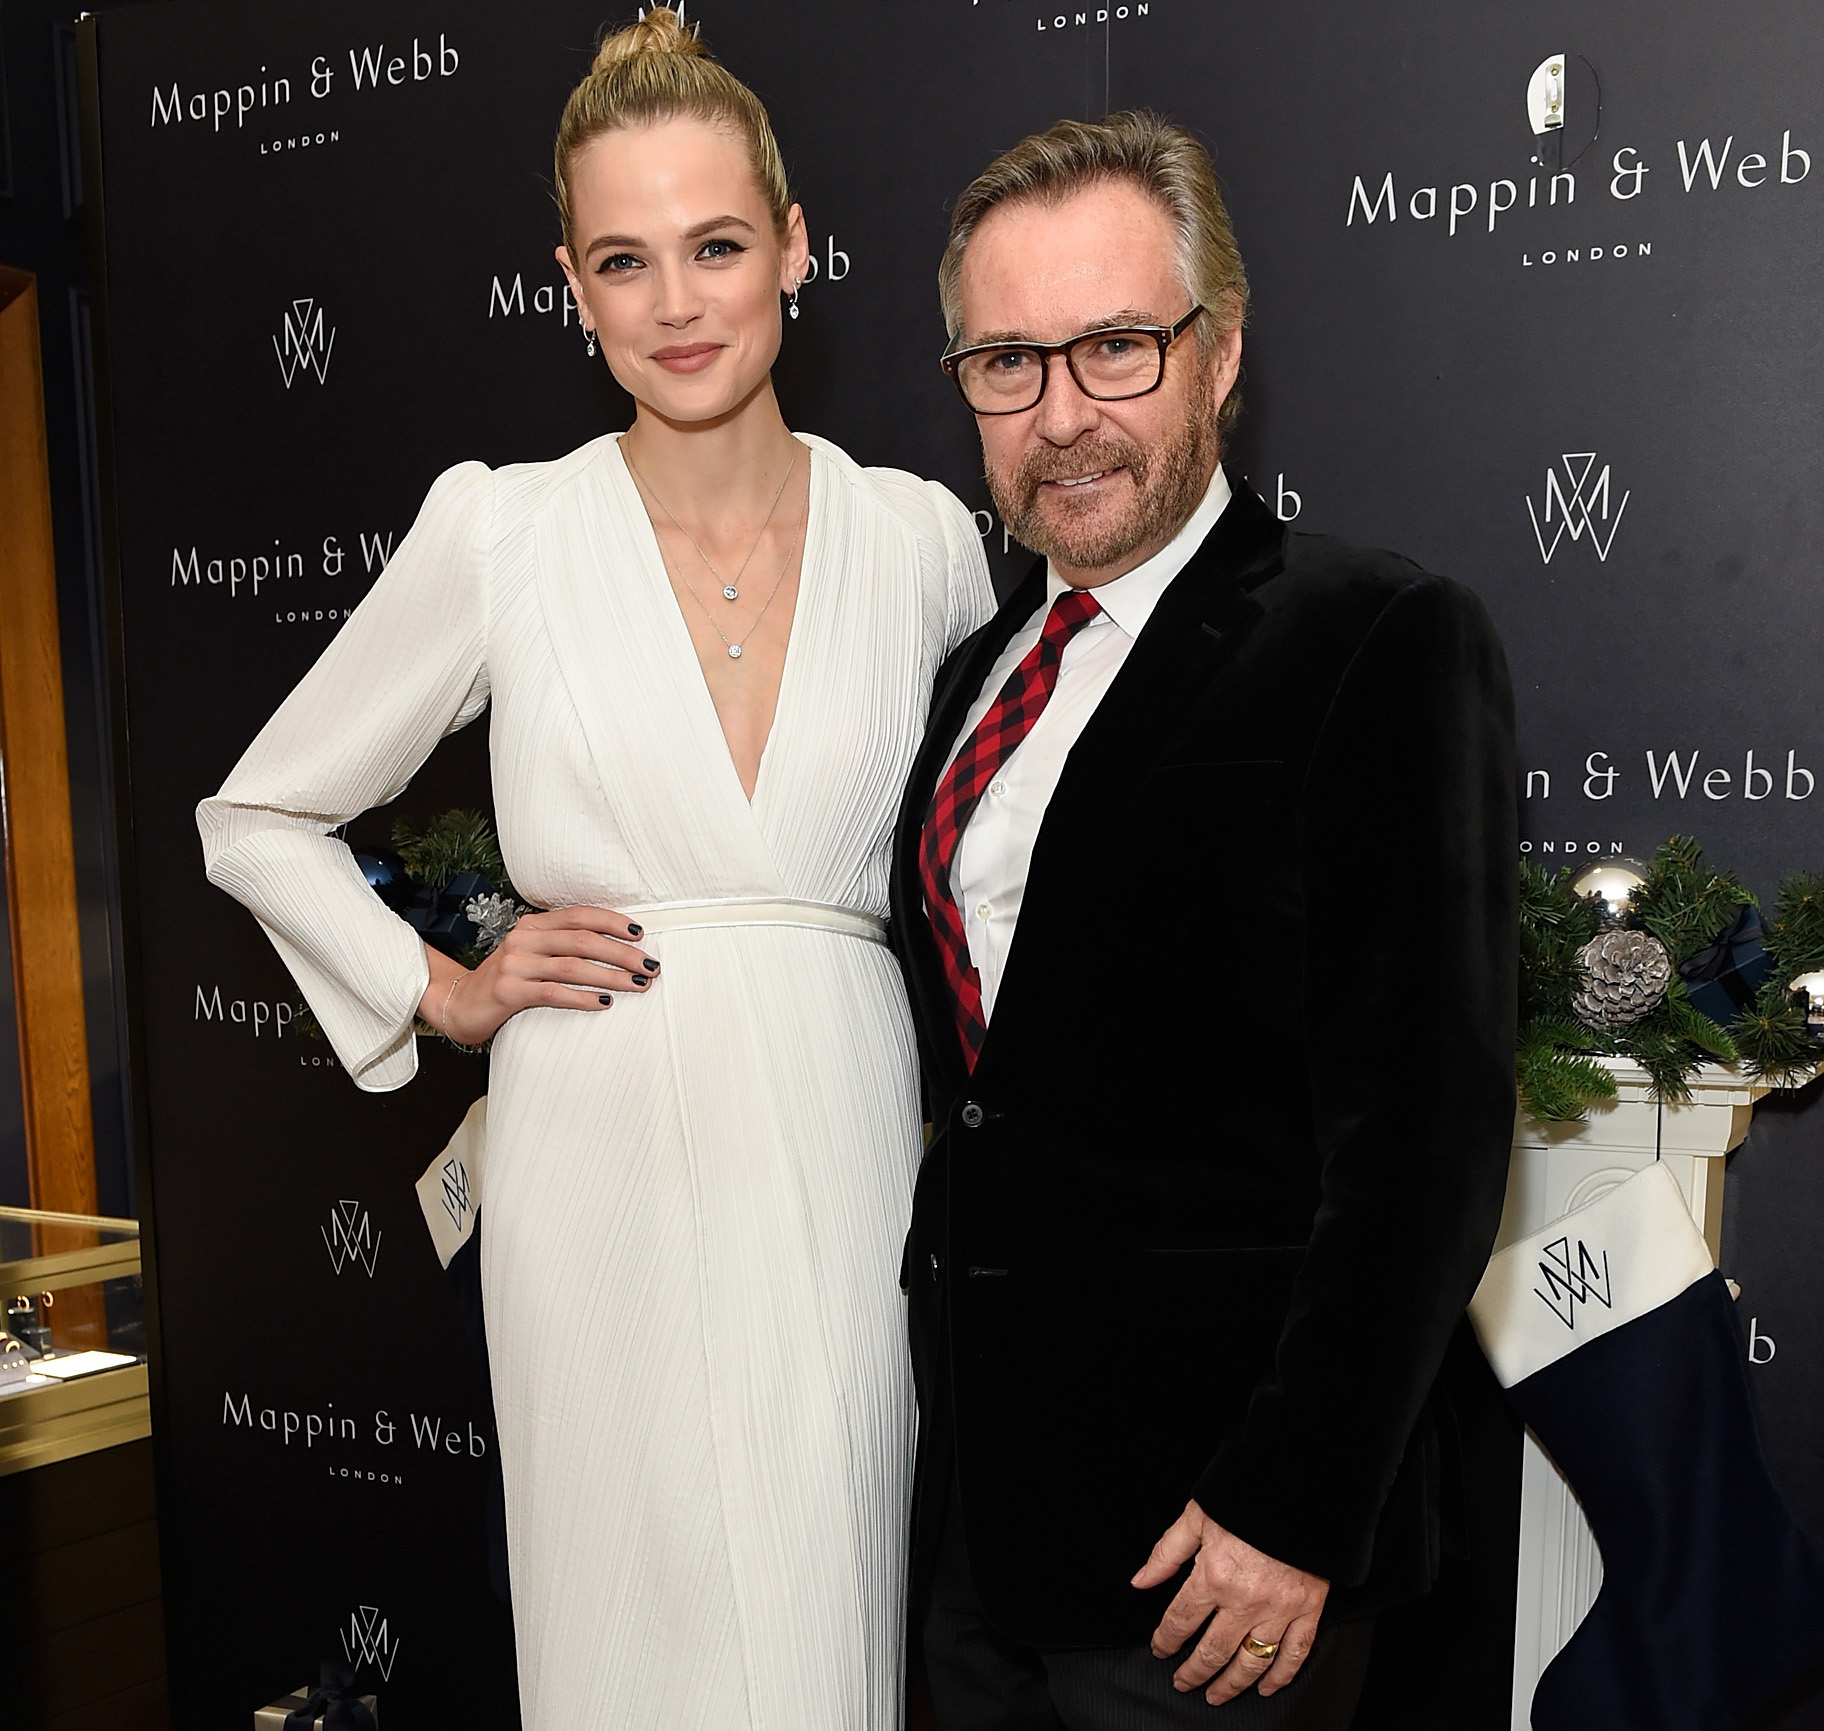 Gabriella Wilde, the face of Mappin & Webb, attended the party with Brian Duffy to reopen the Regent Street store in 2016.